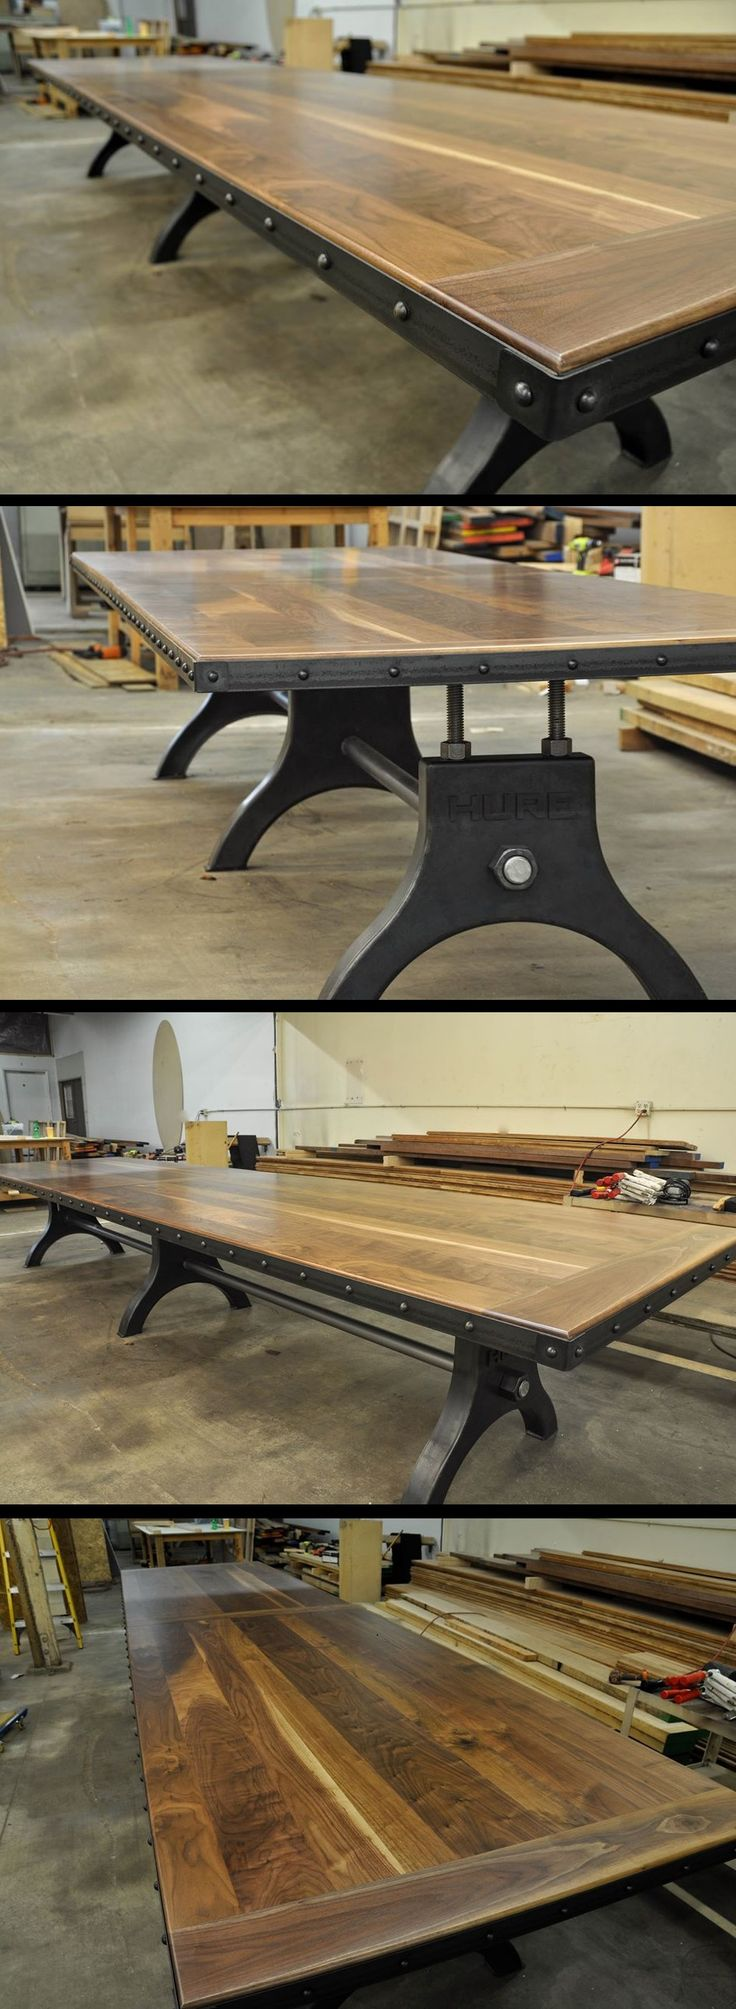 Hure Conference Table by Vintage Industrial in Phoenix, AZ.